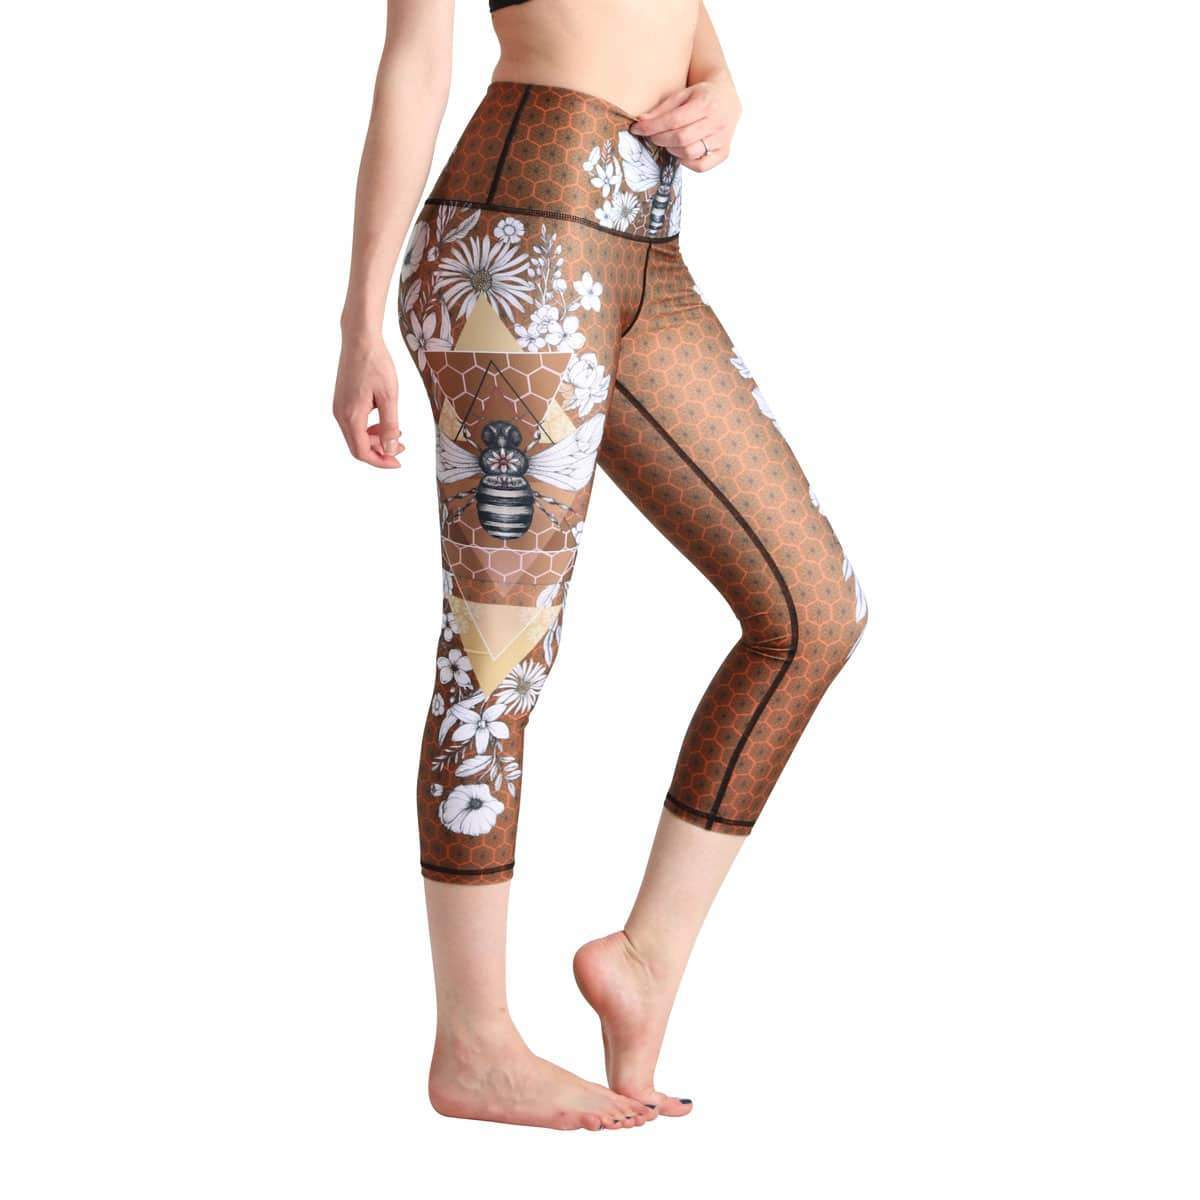 hot-yoga-fitness-capri-legging-min.jpg